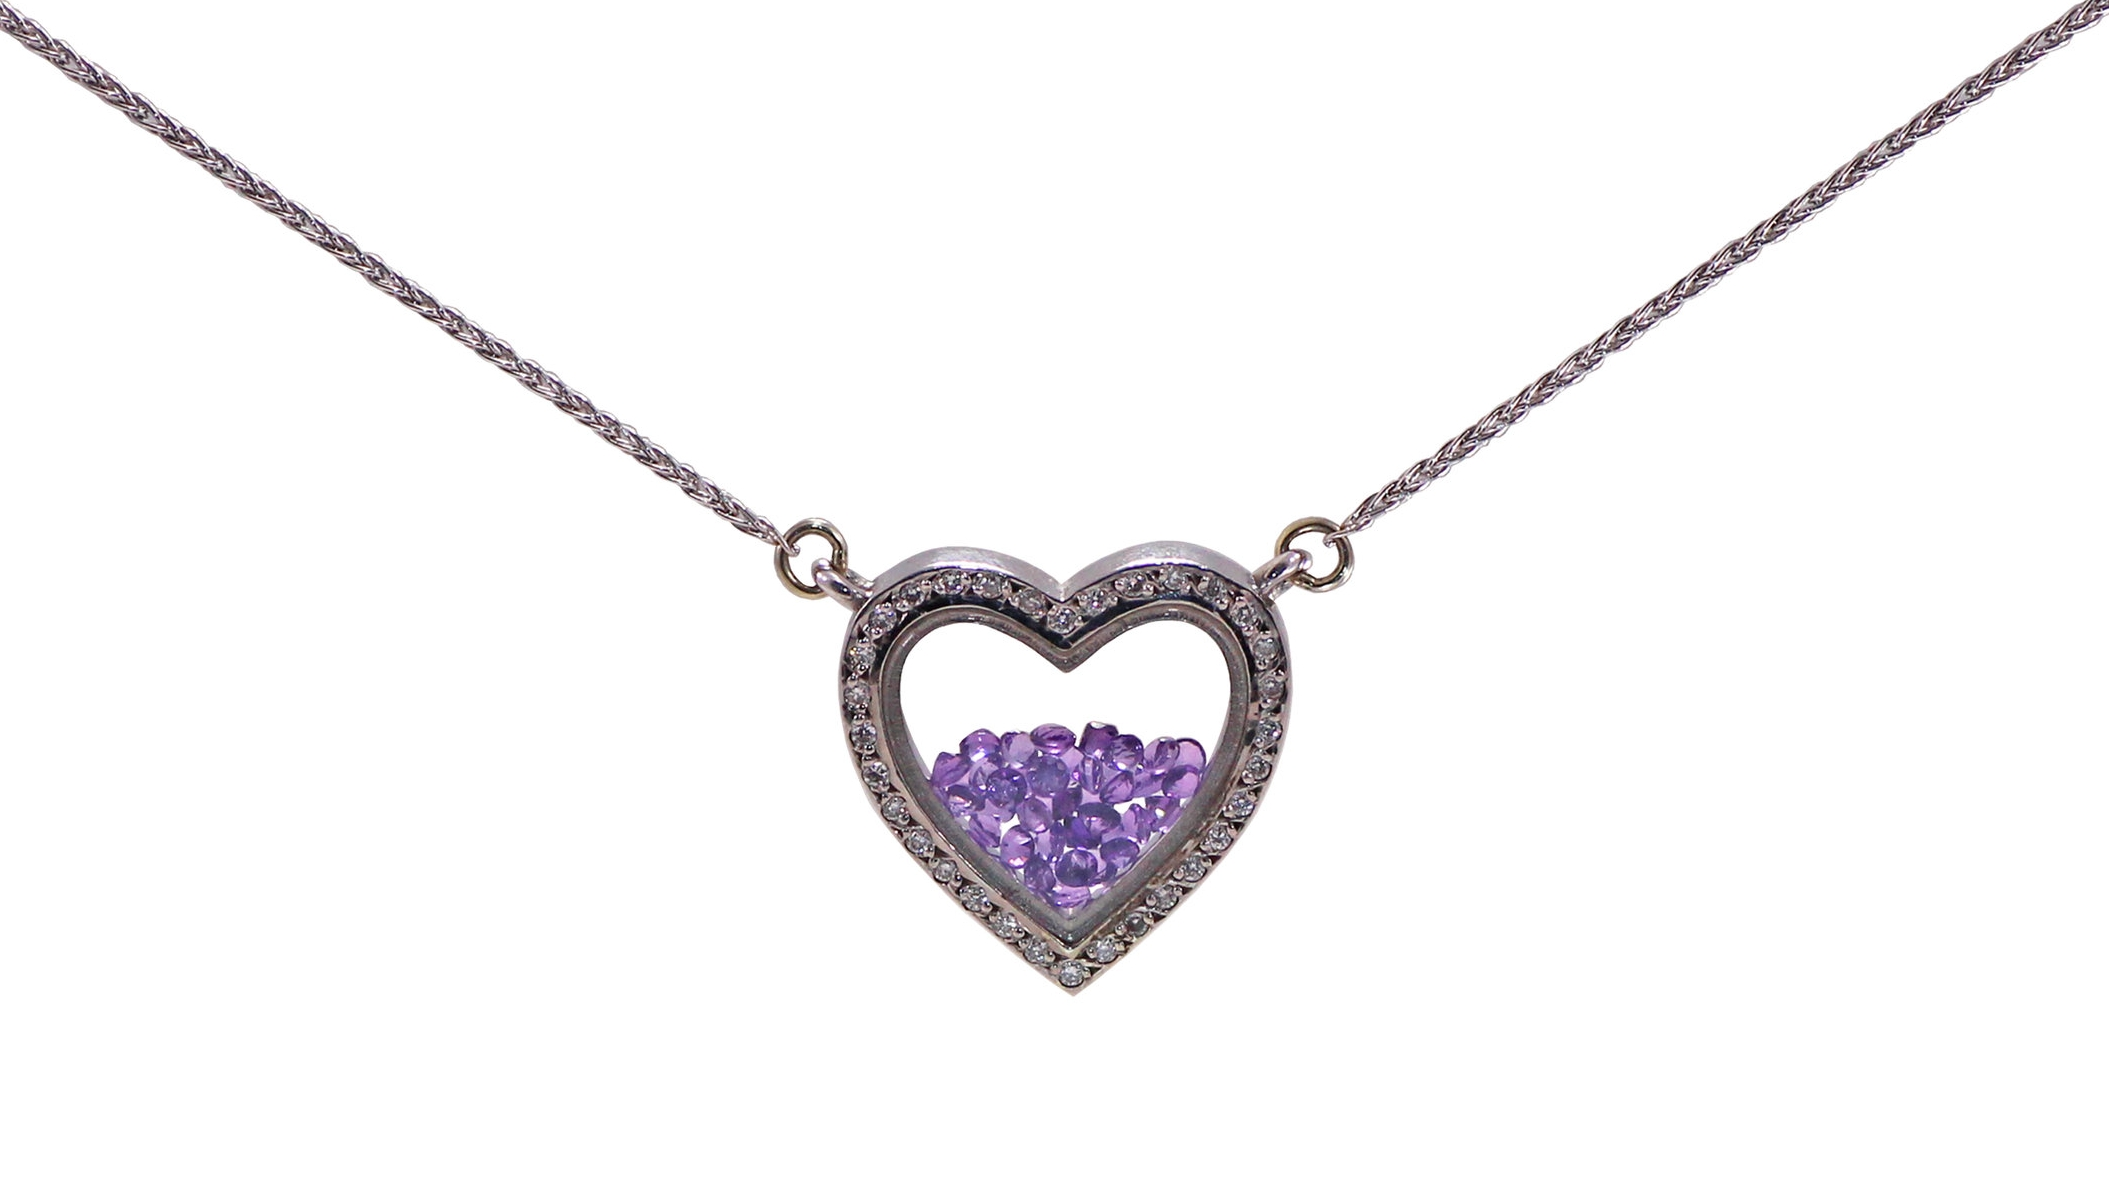 Diamond Heart Pendant filled with Amethysts